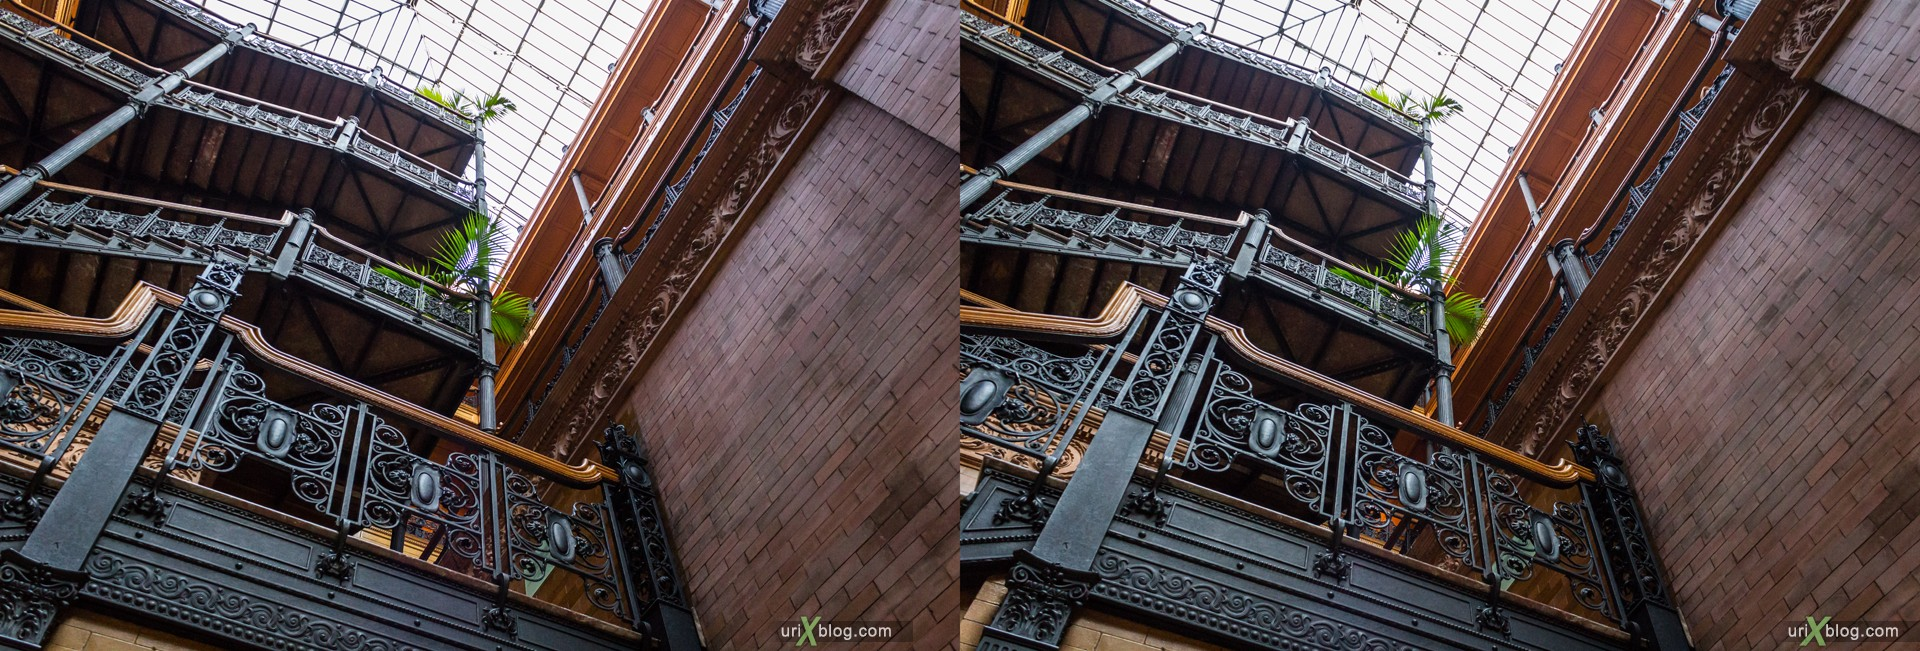 2013, USA, Bradbury Building, Los Angeles, California, 3D, stereo pair, cross-eyed, crossview, cross view stereo pair, stereoscopic